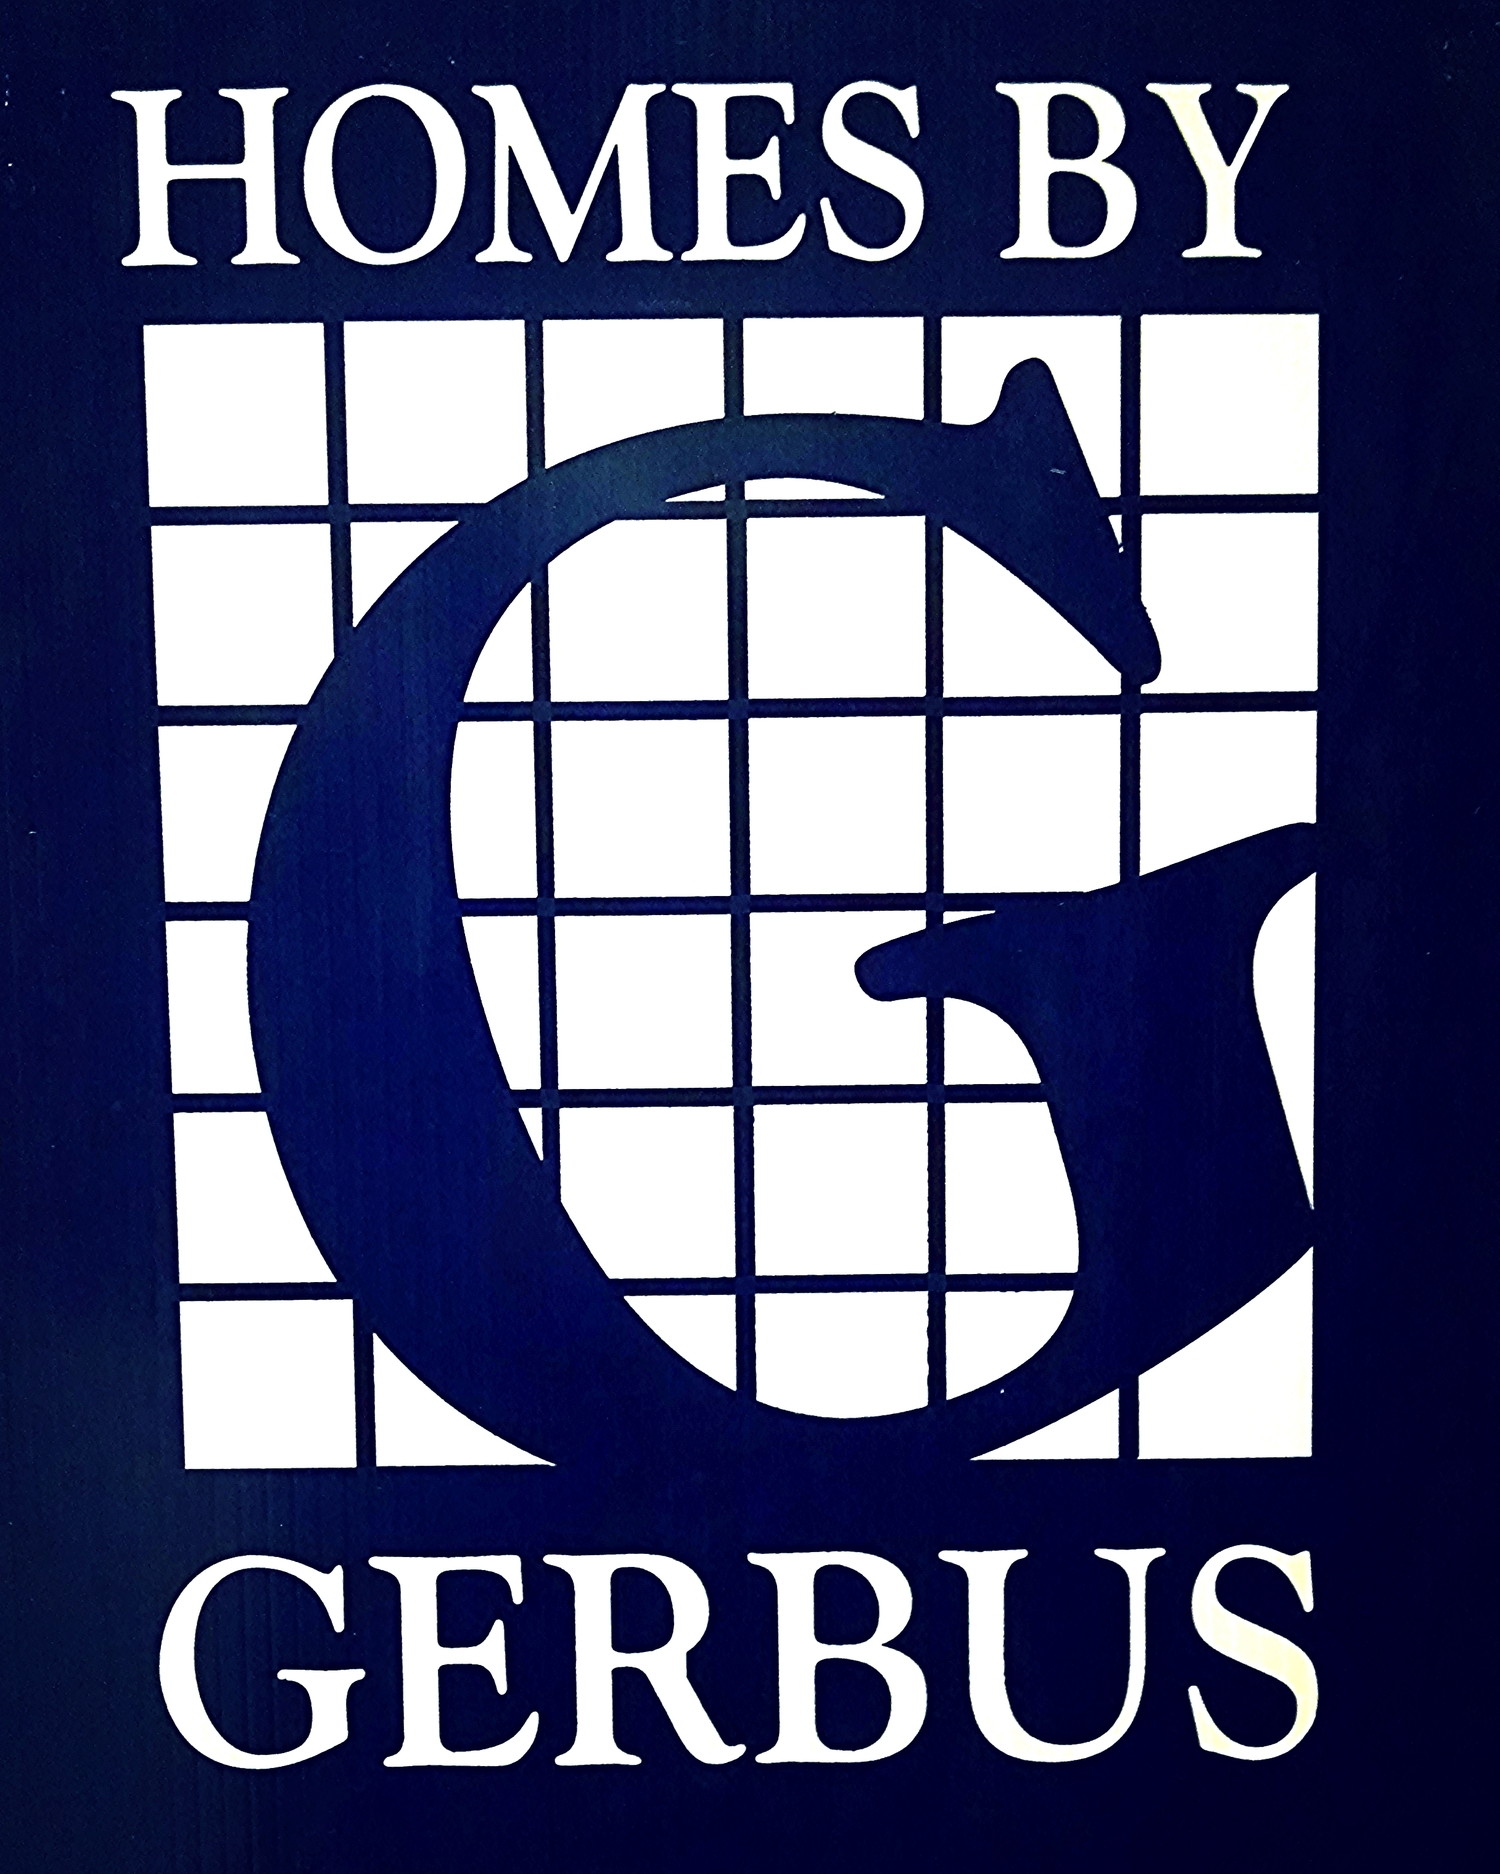 Homes By Gerbus